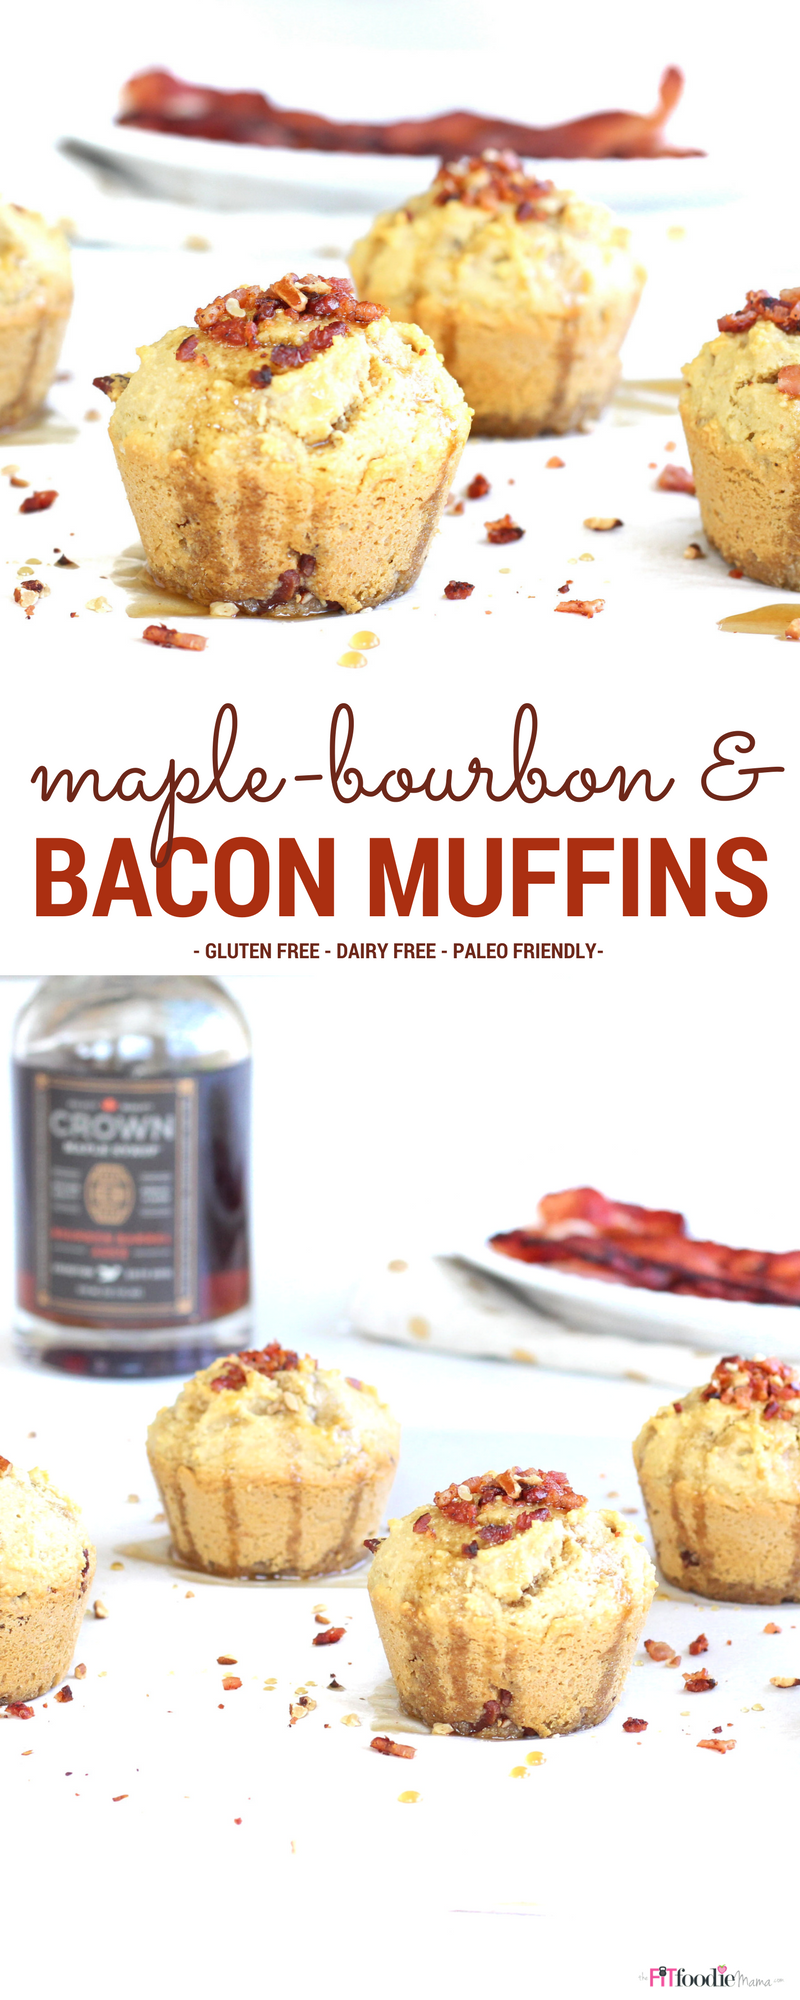 Paleo friendly Maple-Bourbon Bacon Breakfast Muffins recipe! They're gluten free, grain free, dairy free and the perfect healthy way to fuel your morning along with a tasty kick of maple-bourbon syrup!